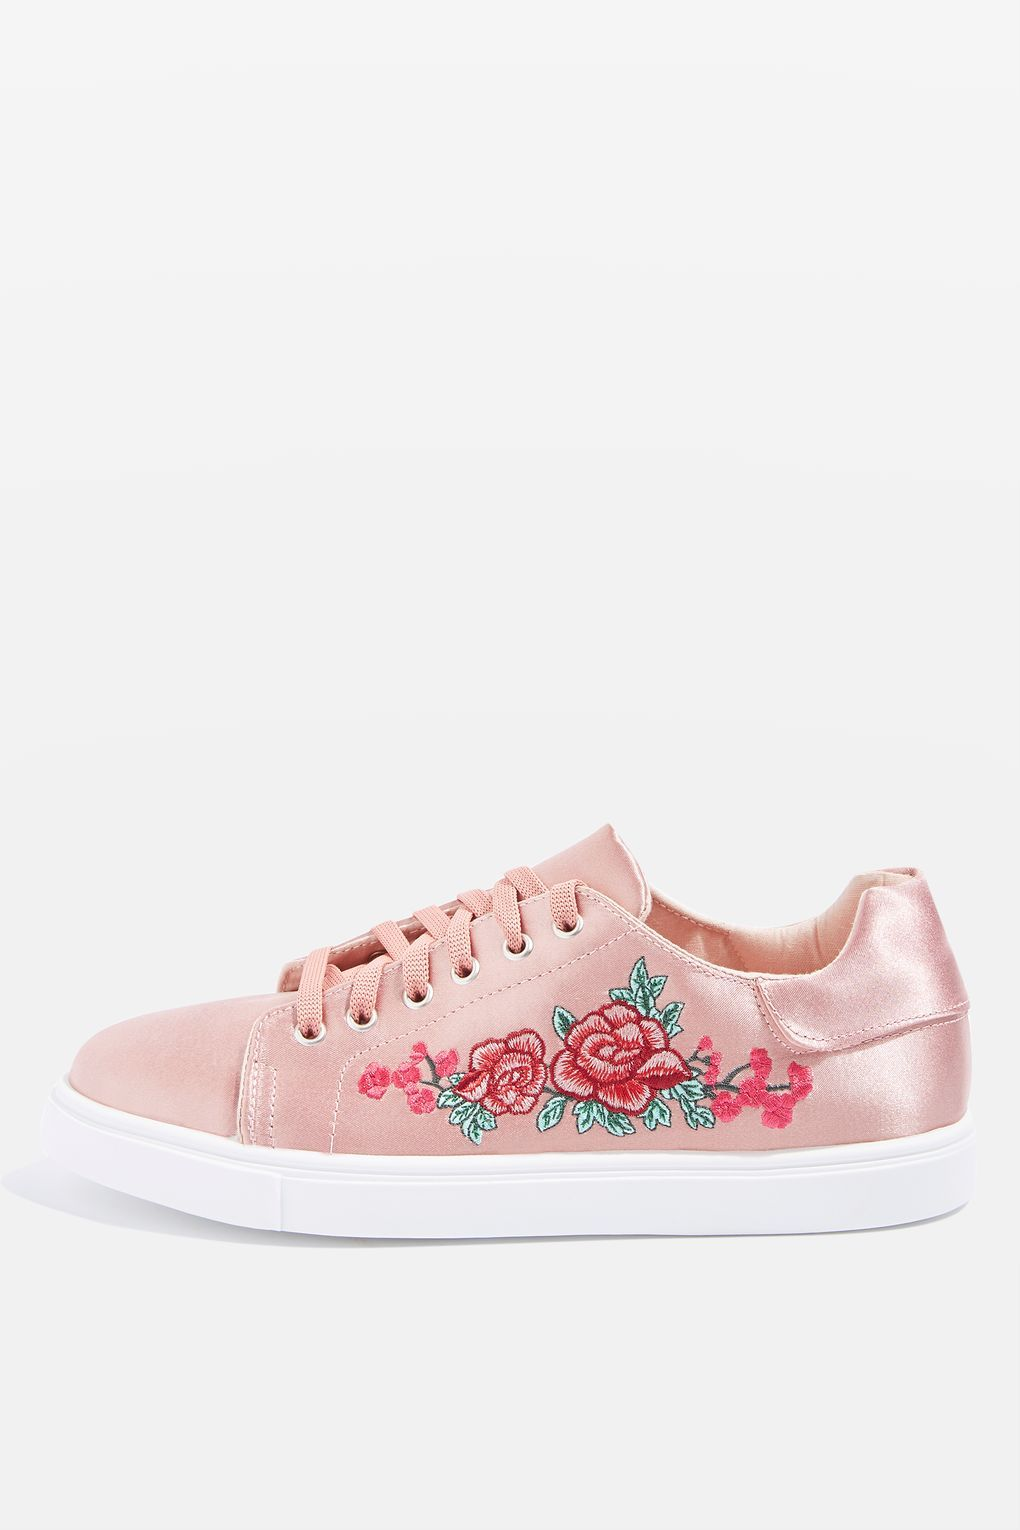 7820cee278b1 CAMILLA Pink Embroidery Trainers - Topshop